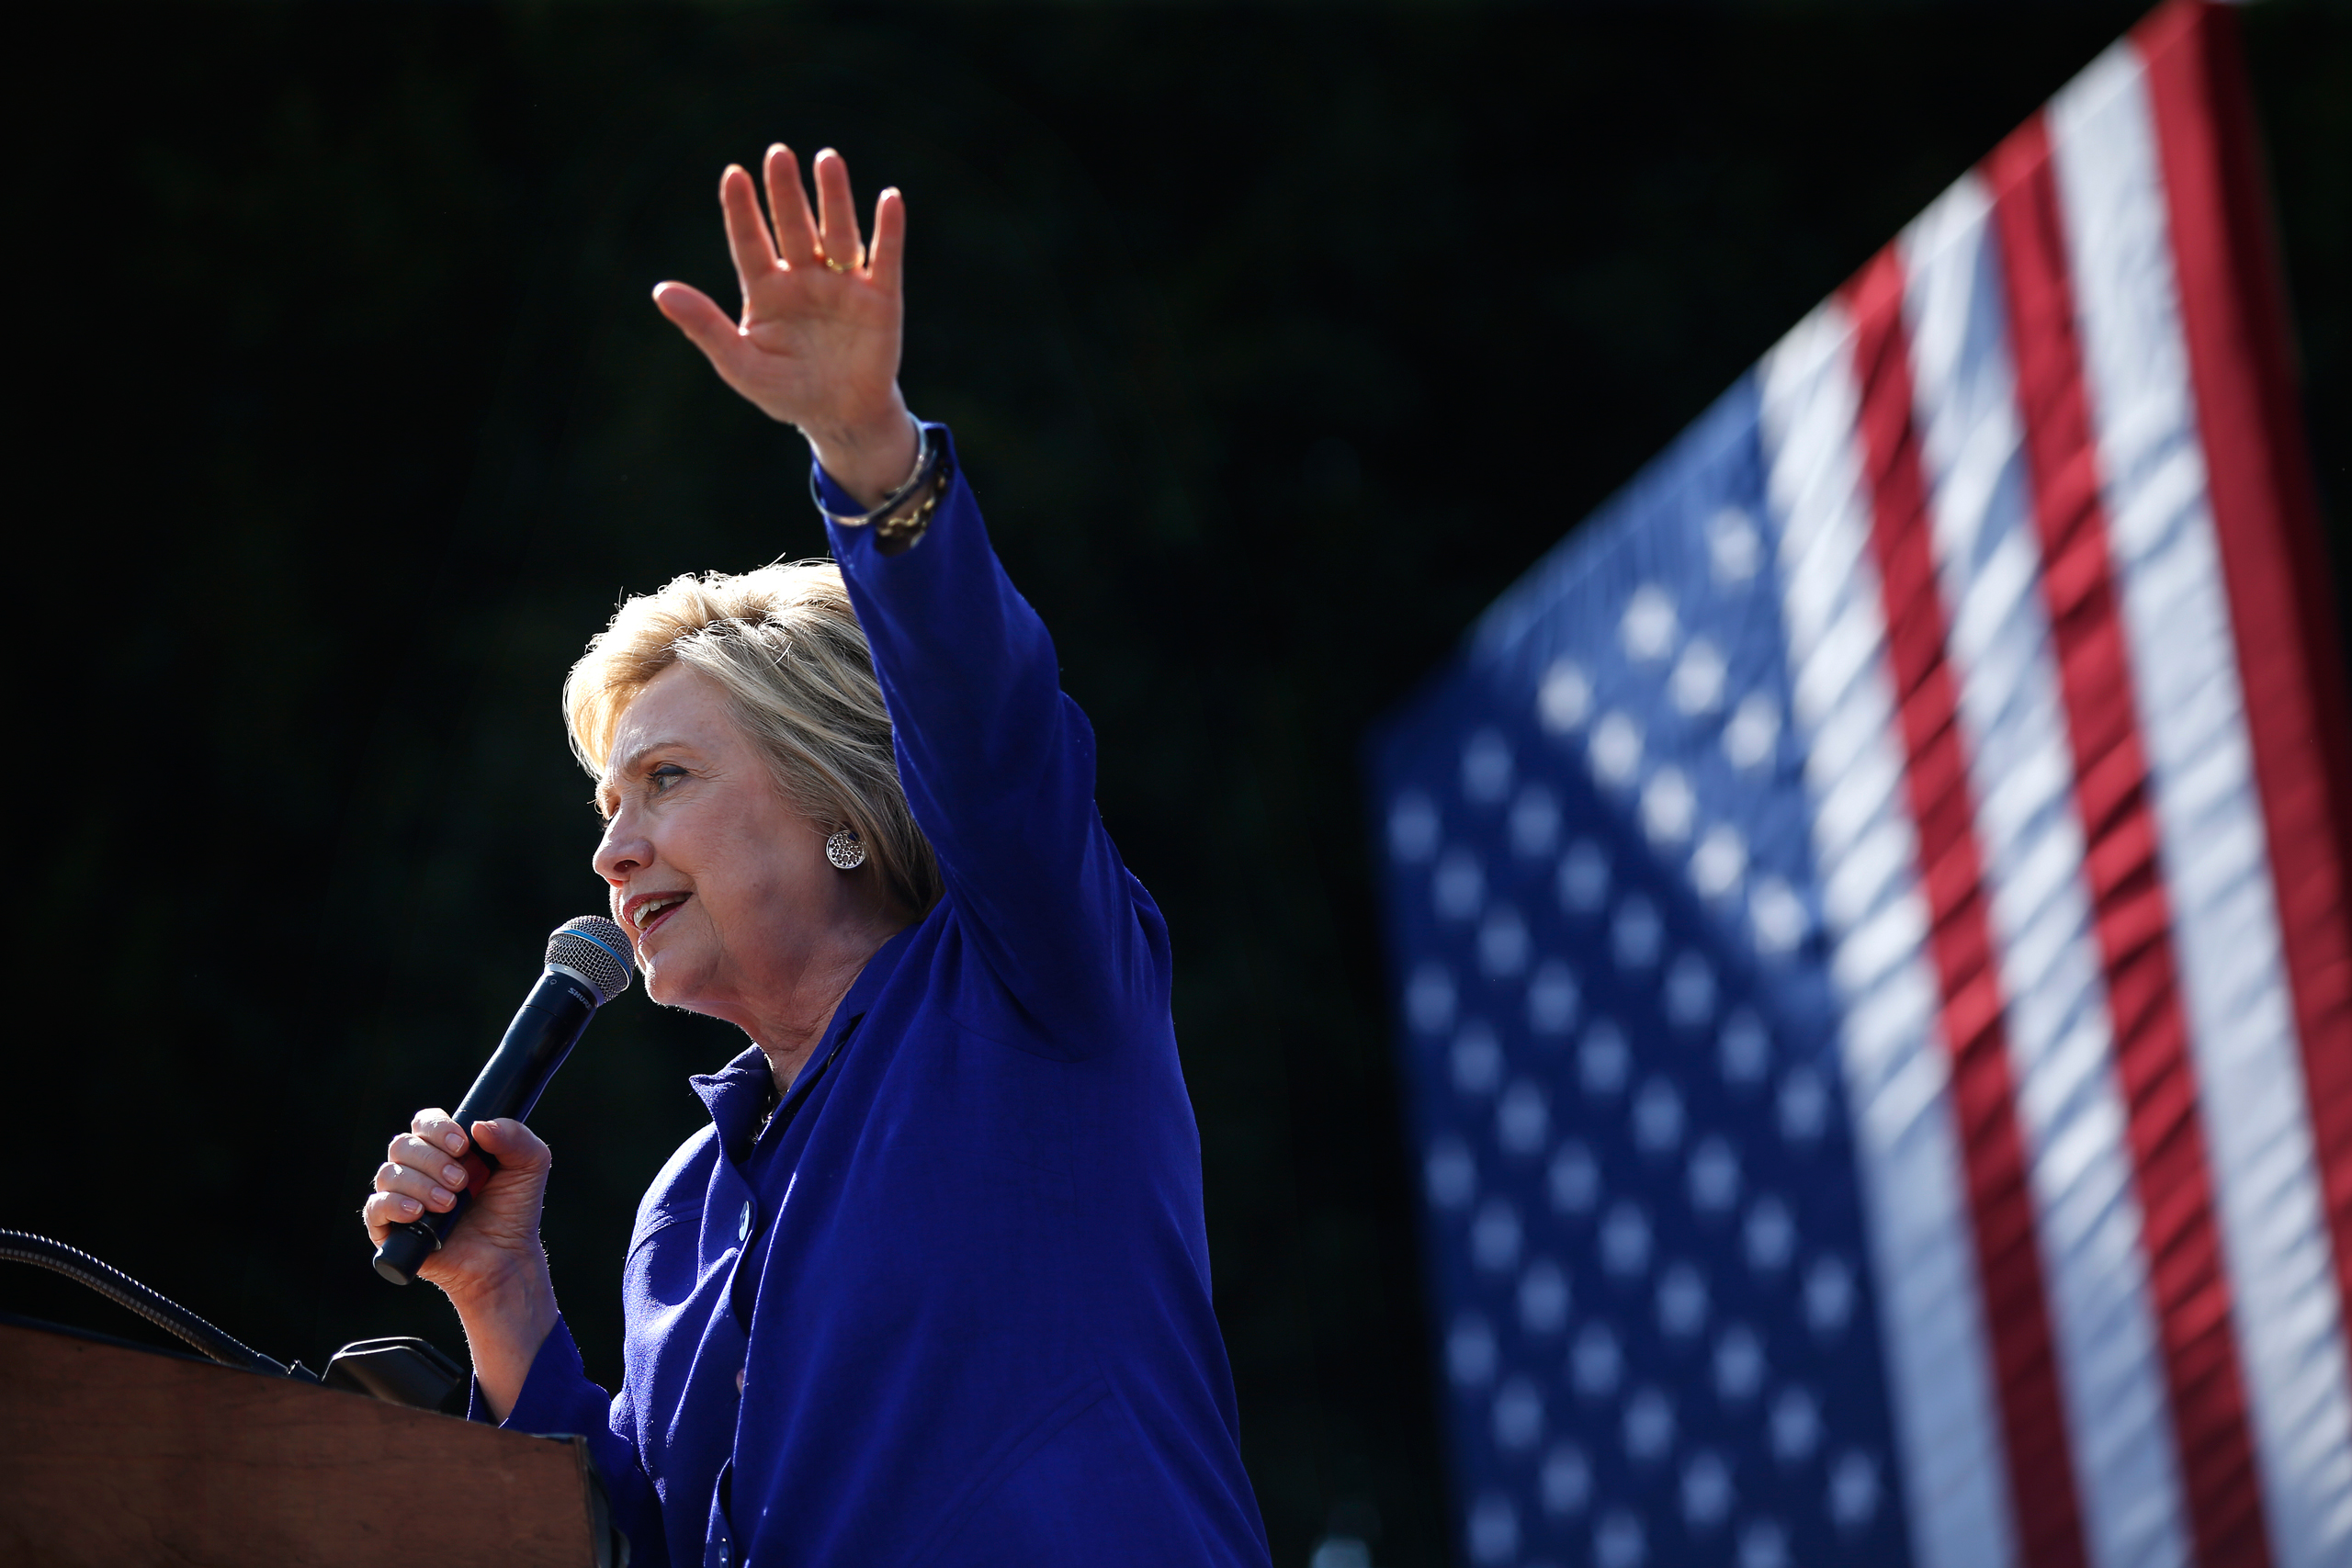 Democratic presidential candidate Hillary Clinton speaks at a rally in Los Angeles on June 6, 2016.